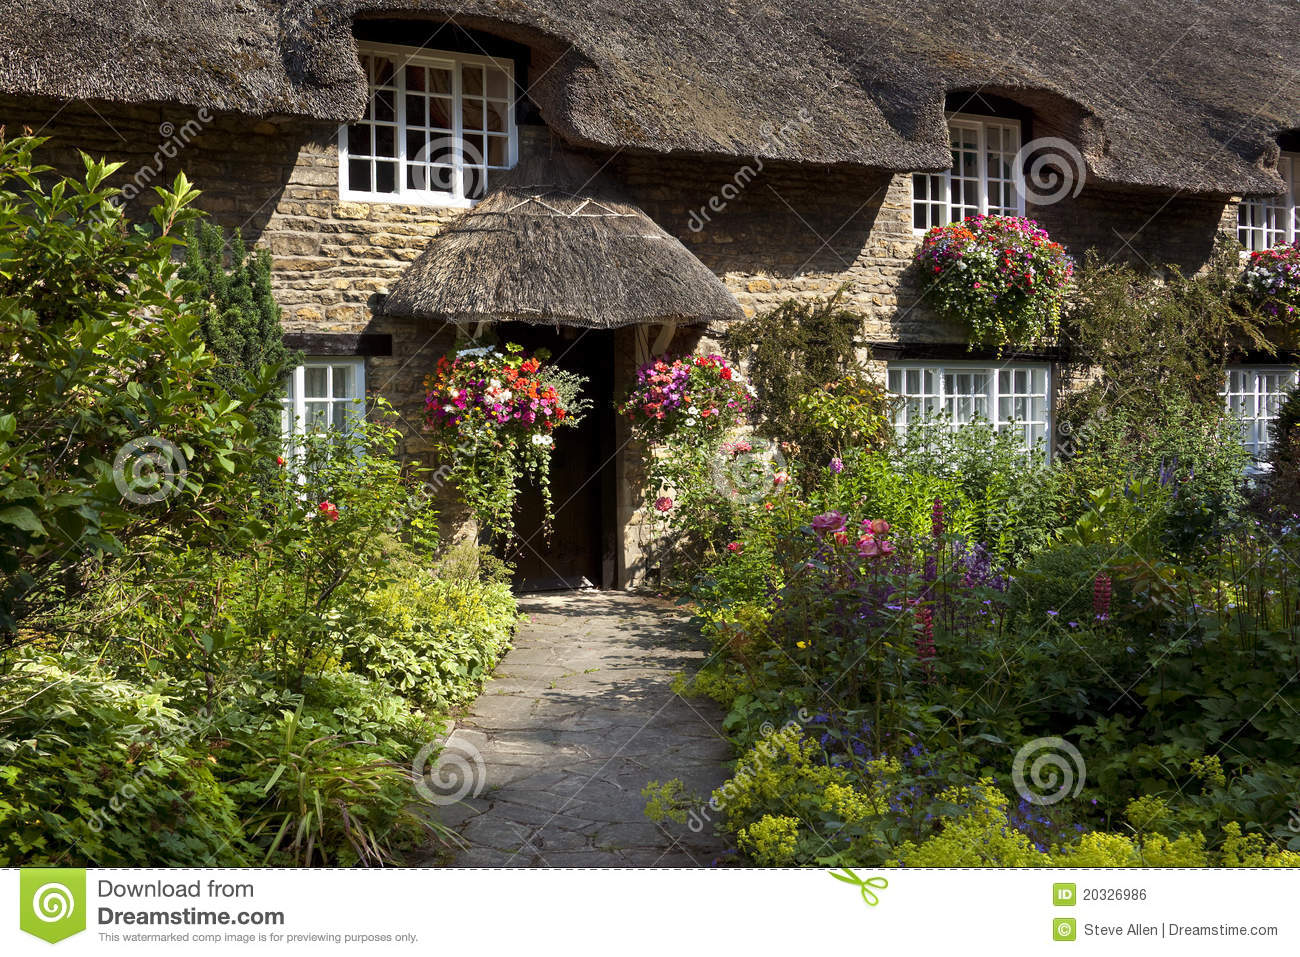 English country cottage yorkshire england royalty free stock image image 20326986 - Cottage image ...